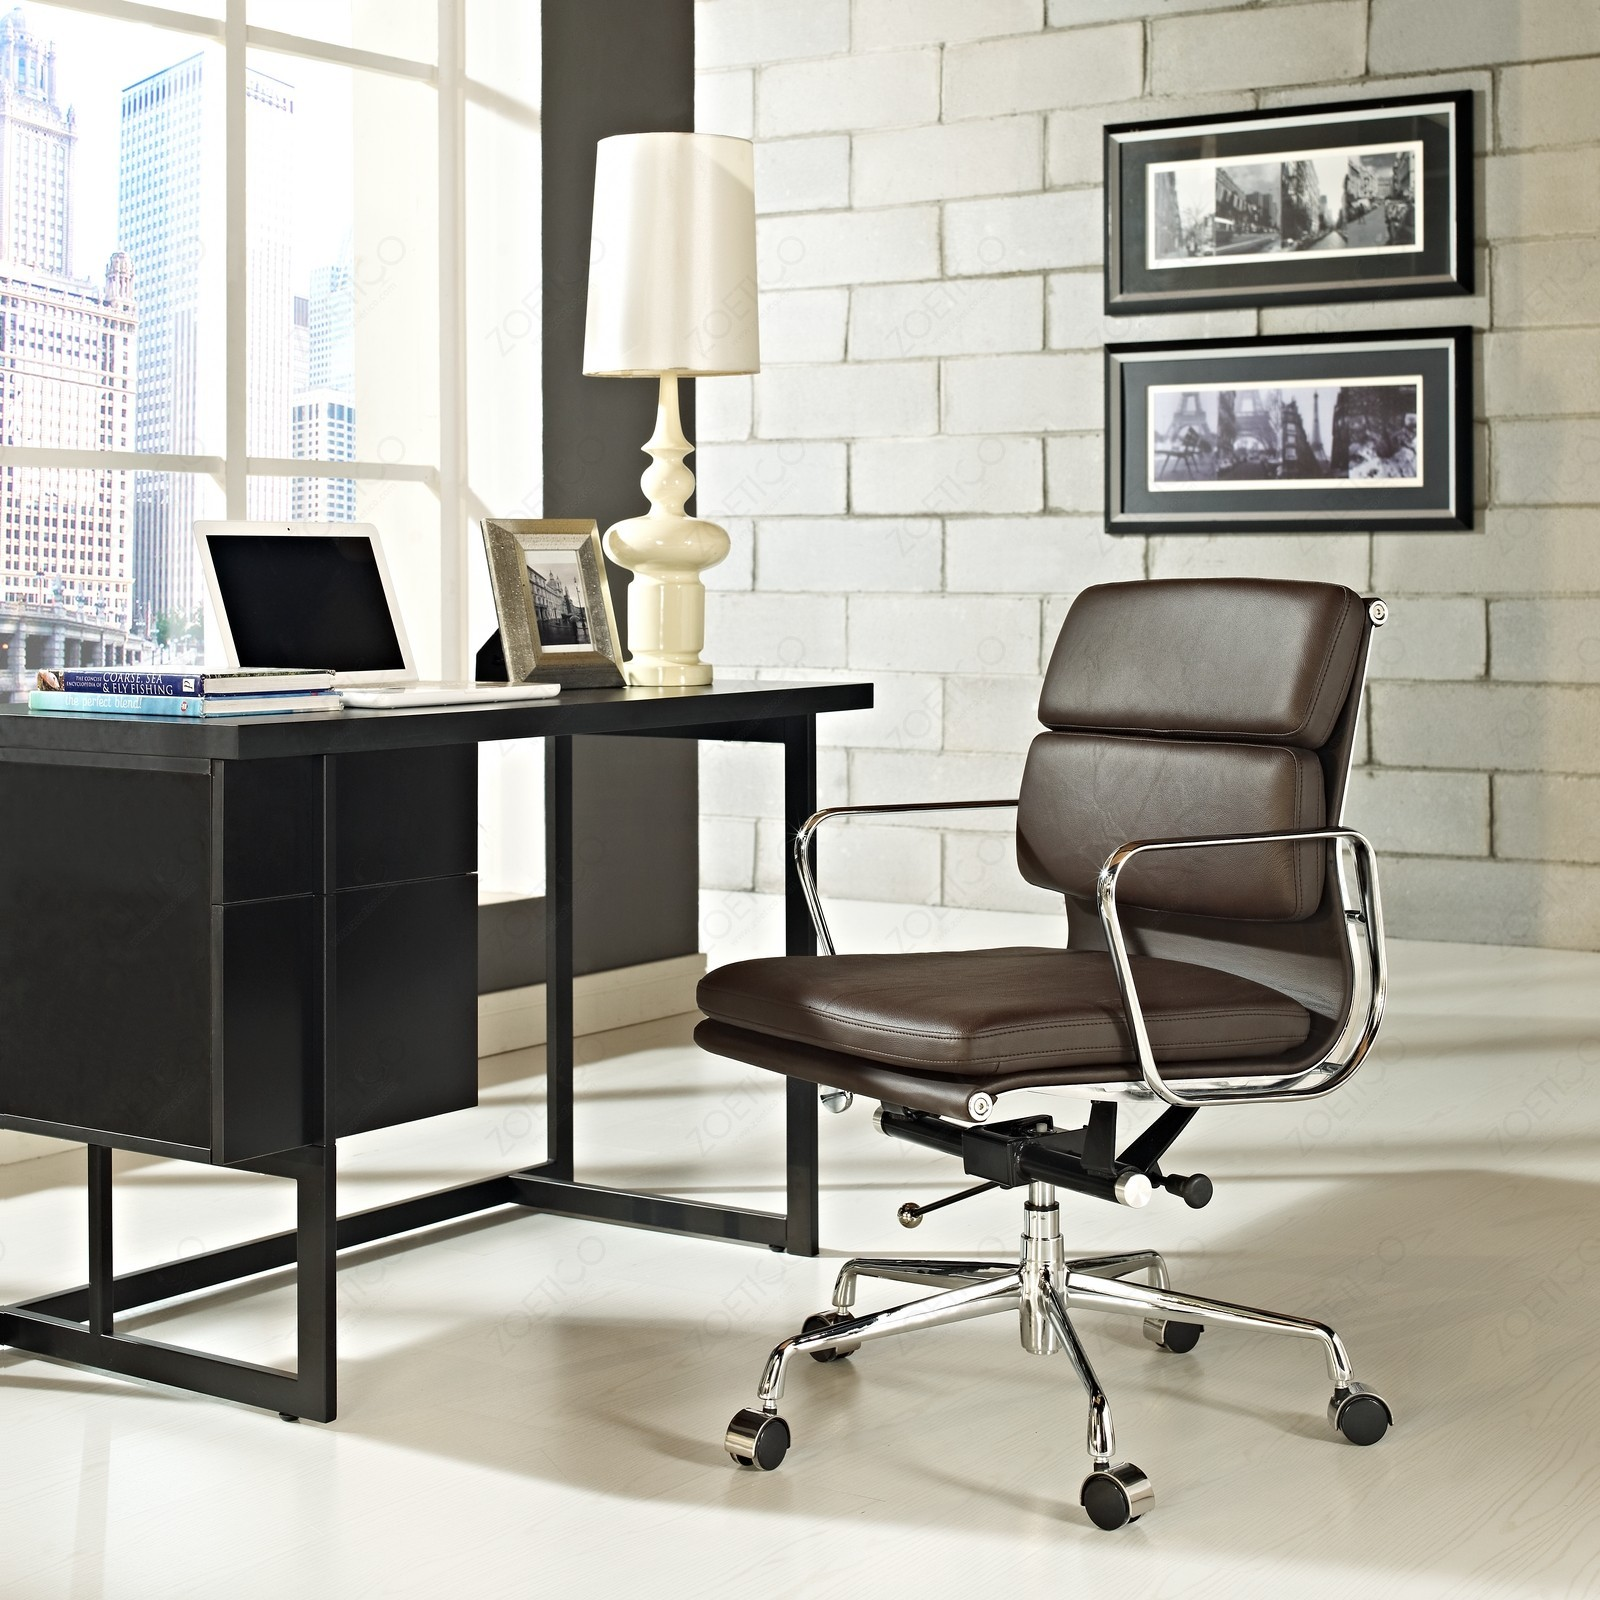 Swell Replica Eames Low Back Soft Pad Management Office Chair Brown Andrewgaddart Wooden Chair Designs For Living Room Andrewgaddartcom